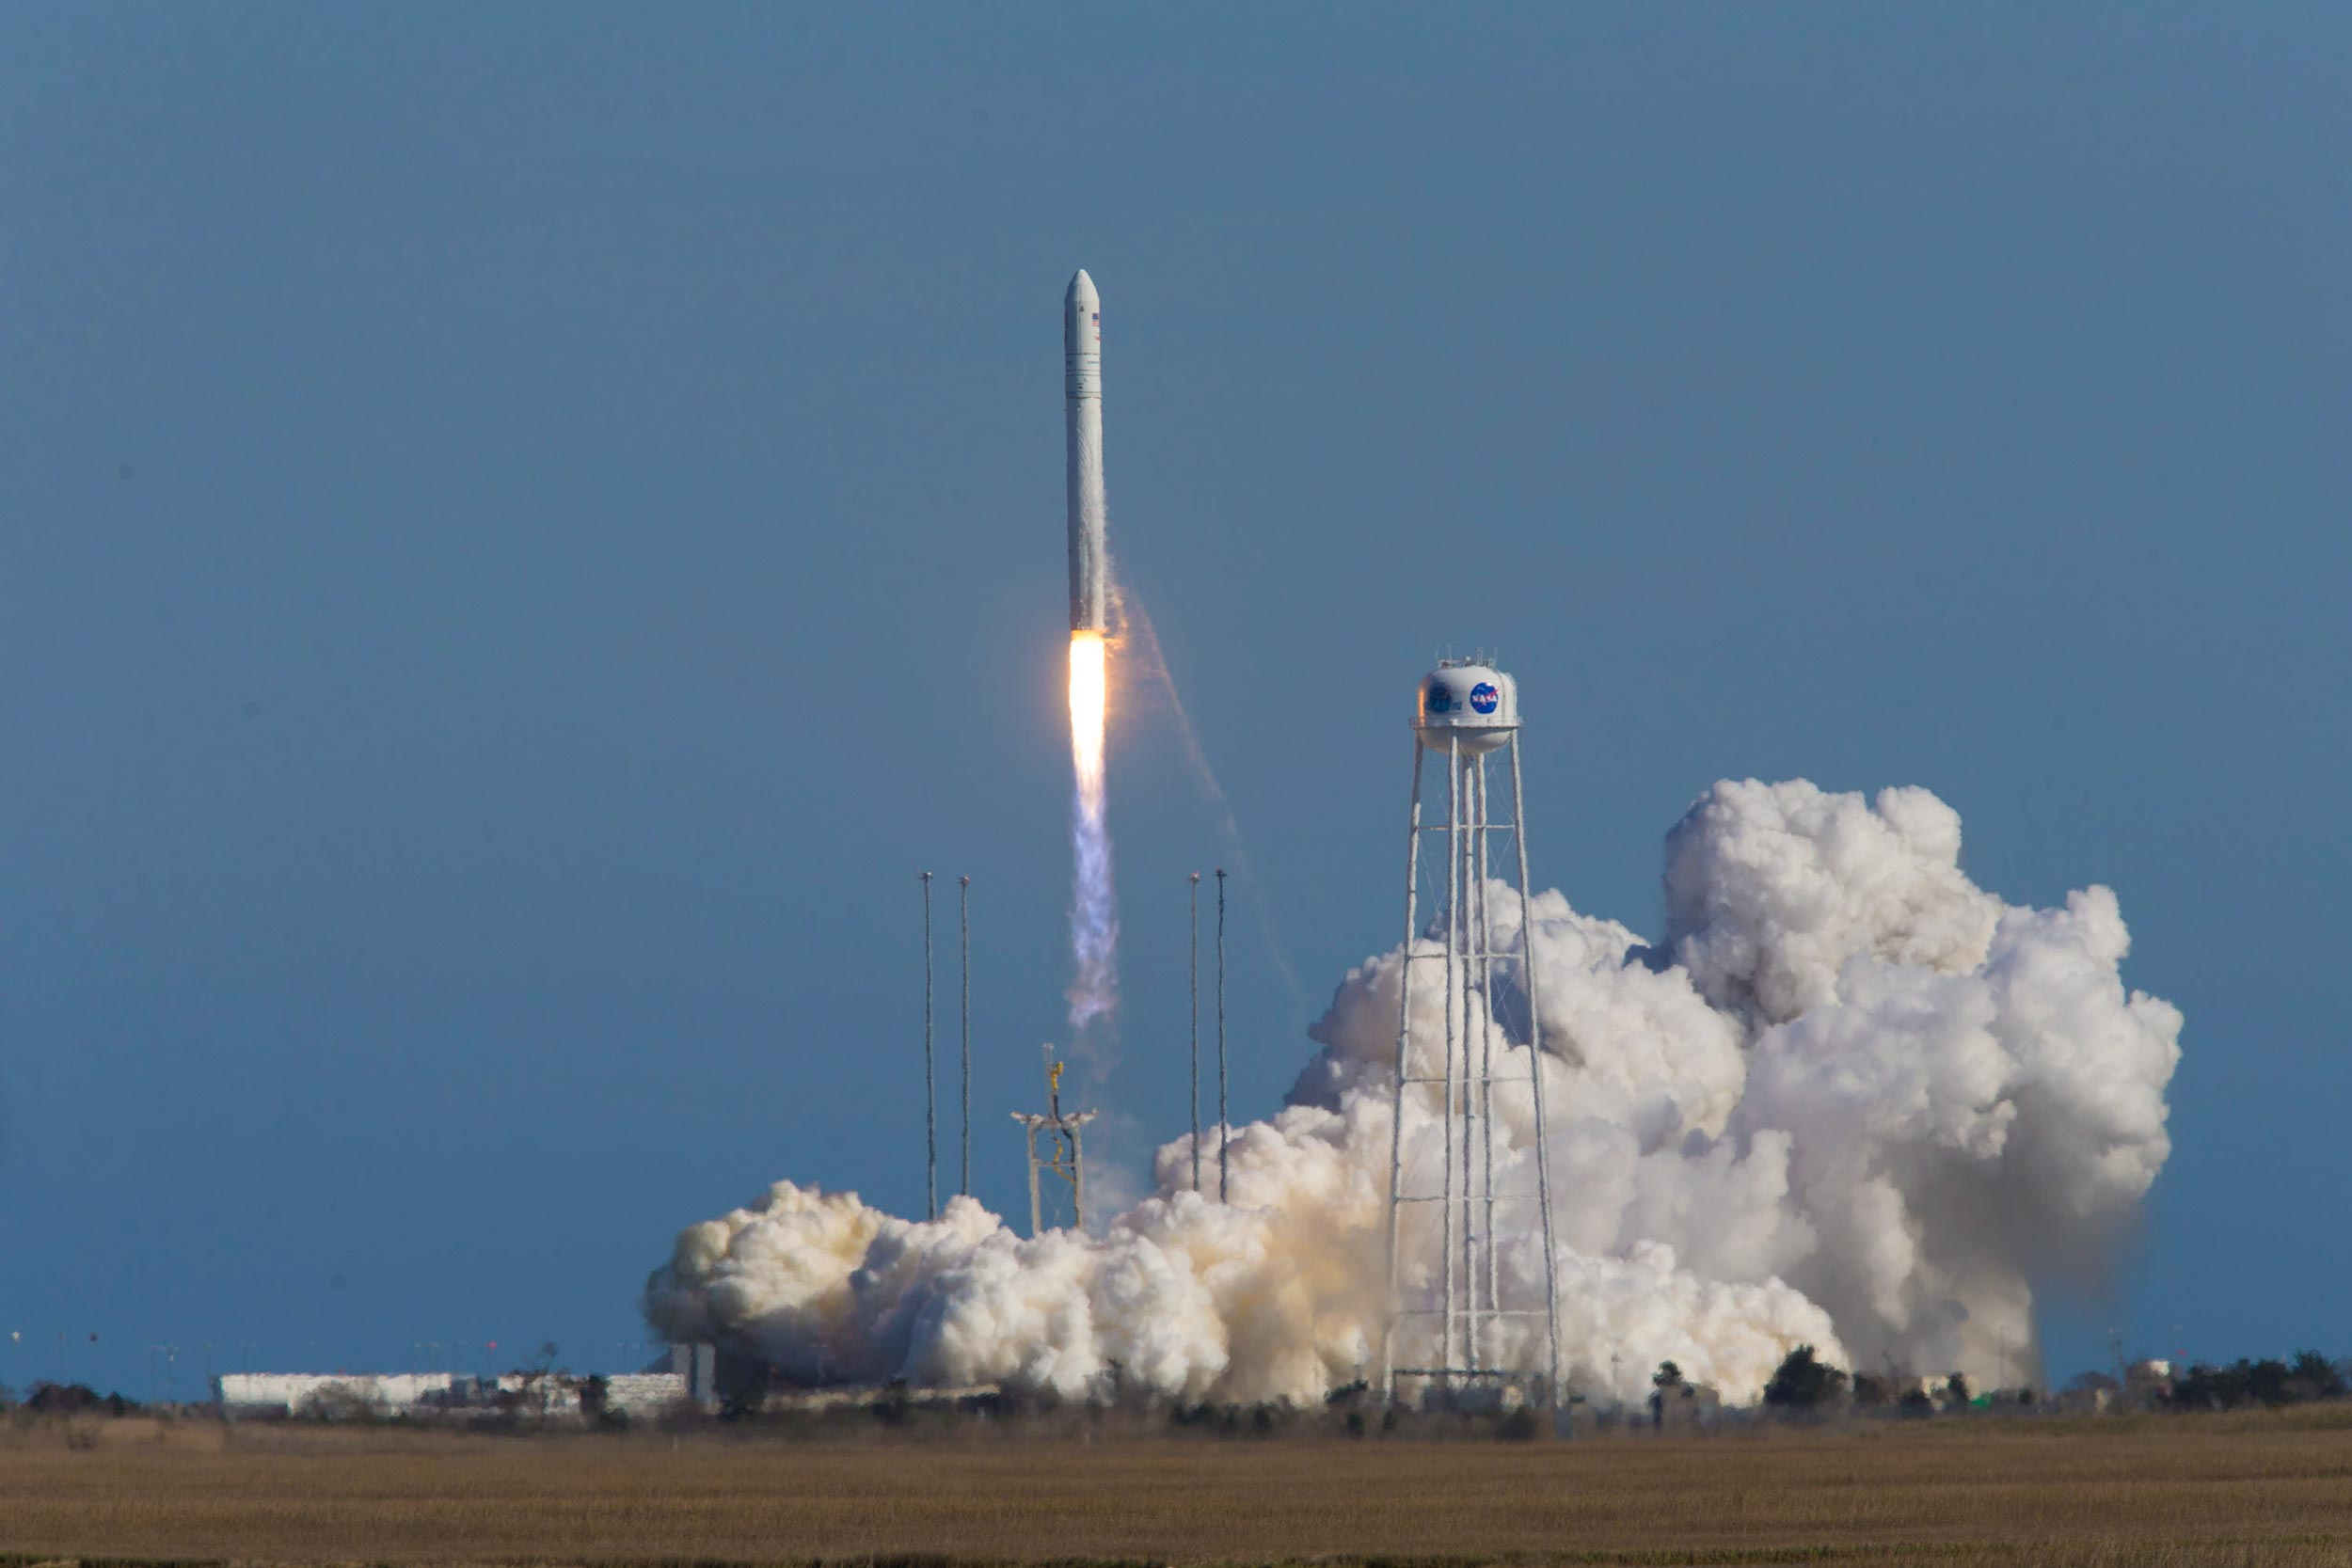 Student-built satellites were launched into space on April 17 from Wallops Flight Facility on Virginia's Eastern Shore.